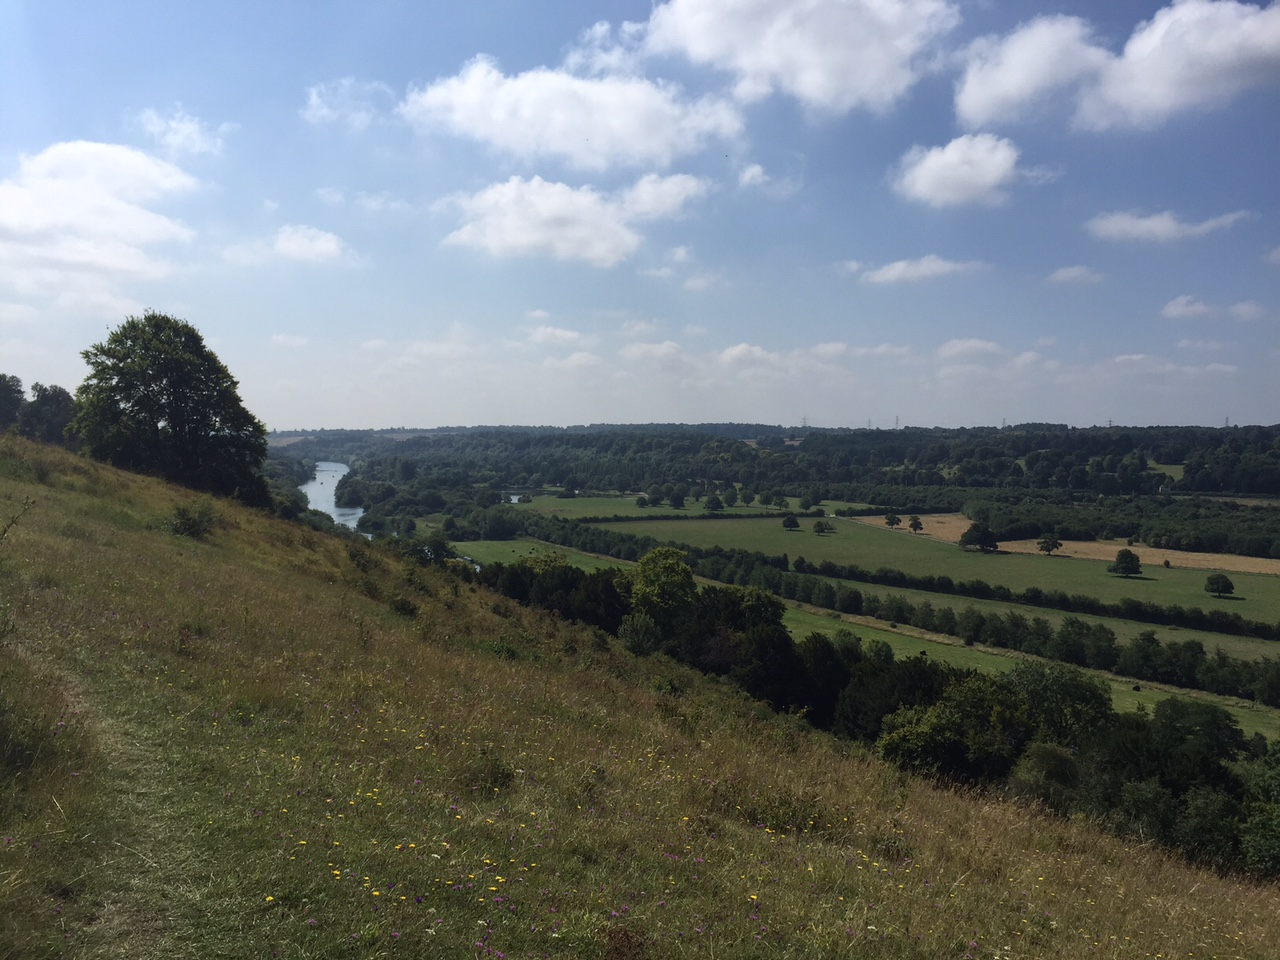 The view from Hartslock